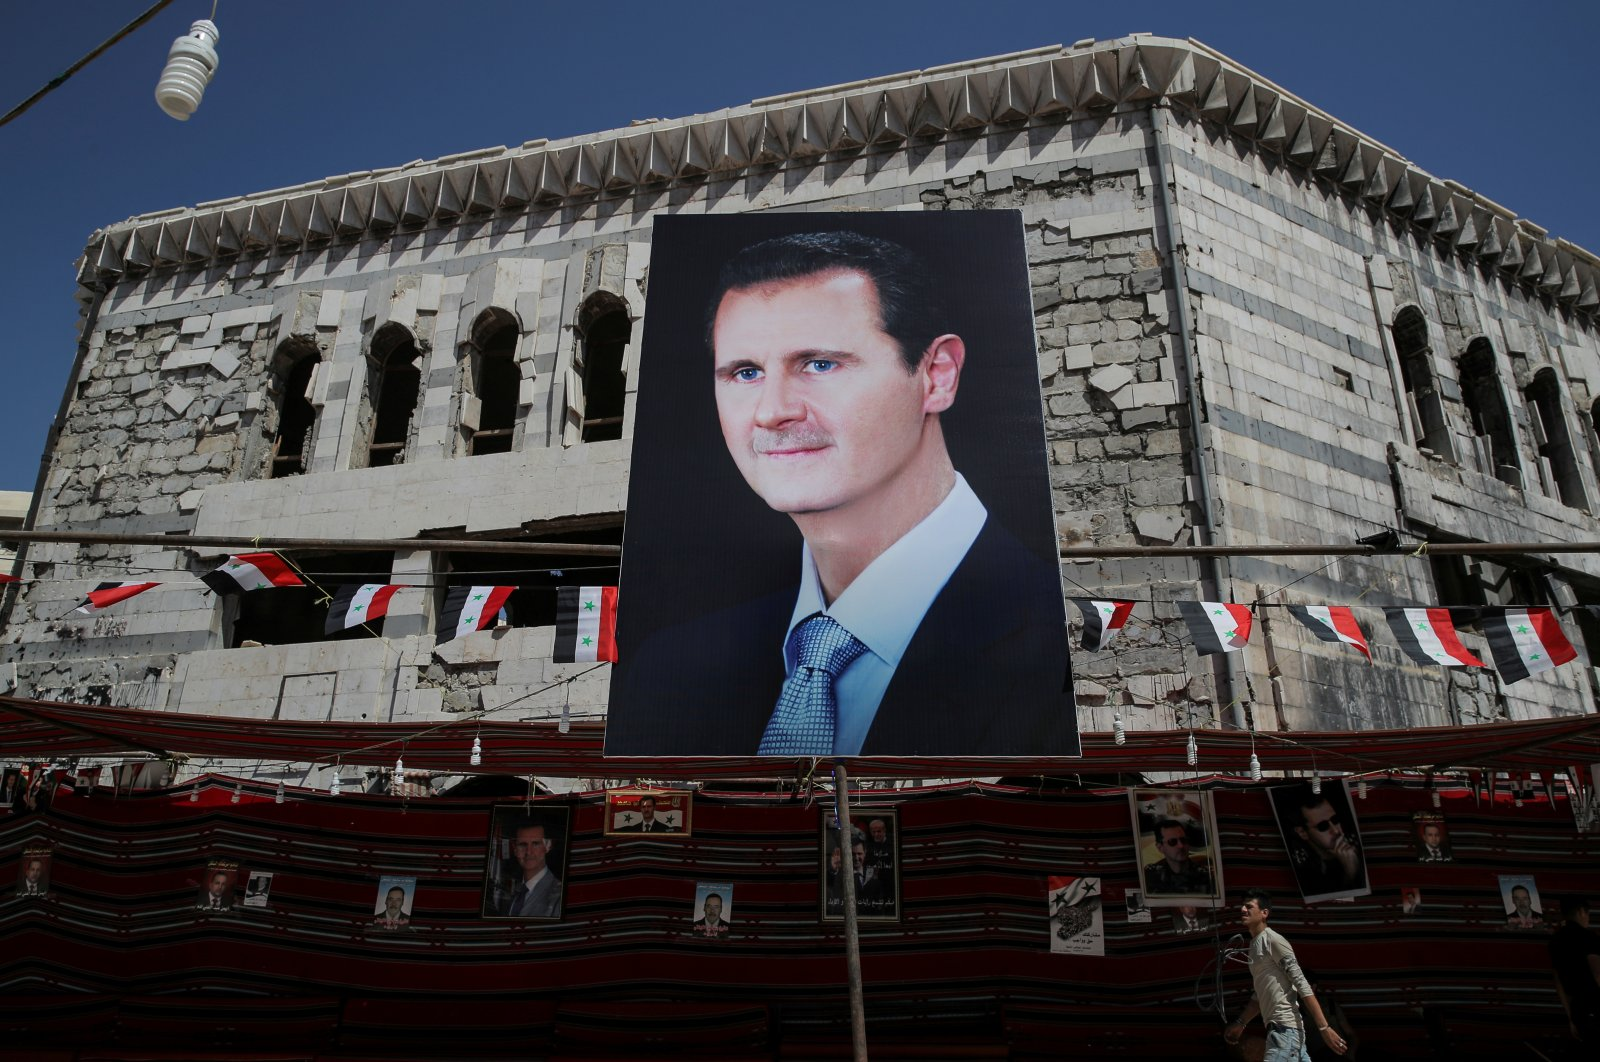 A man walks past a banner depicting Syria's Bashar Assad in Douma, outside Damascus, Syria, Sept. 17, 2018. (Reuters Photo)